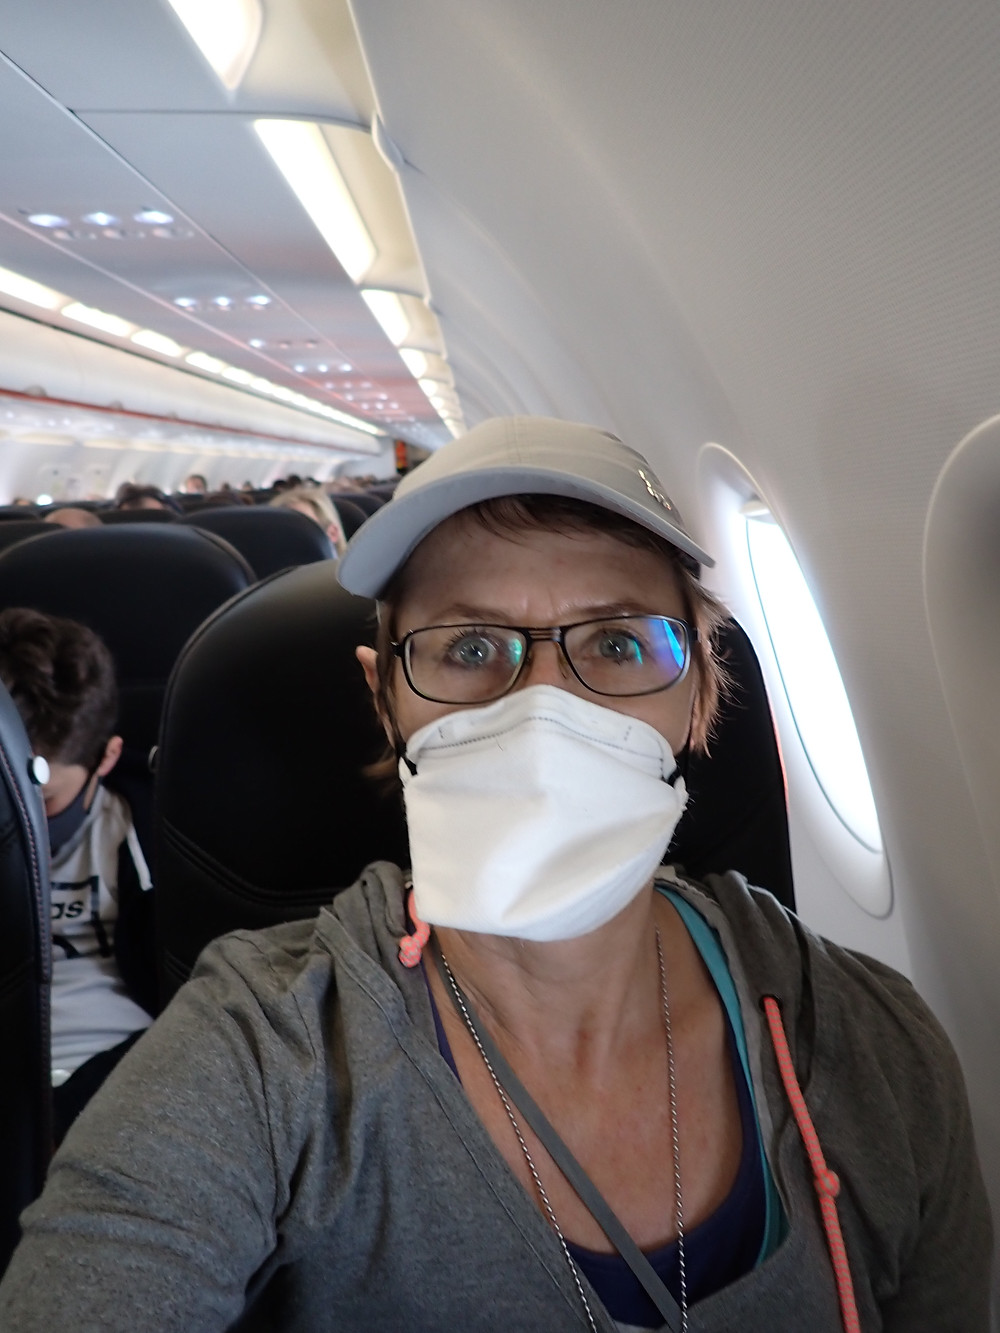 Me, on the plane with a face mask on